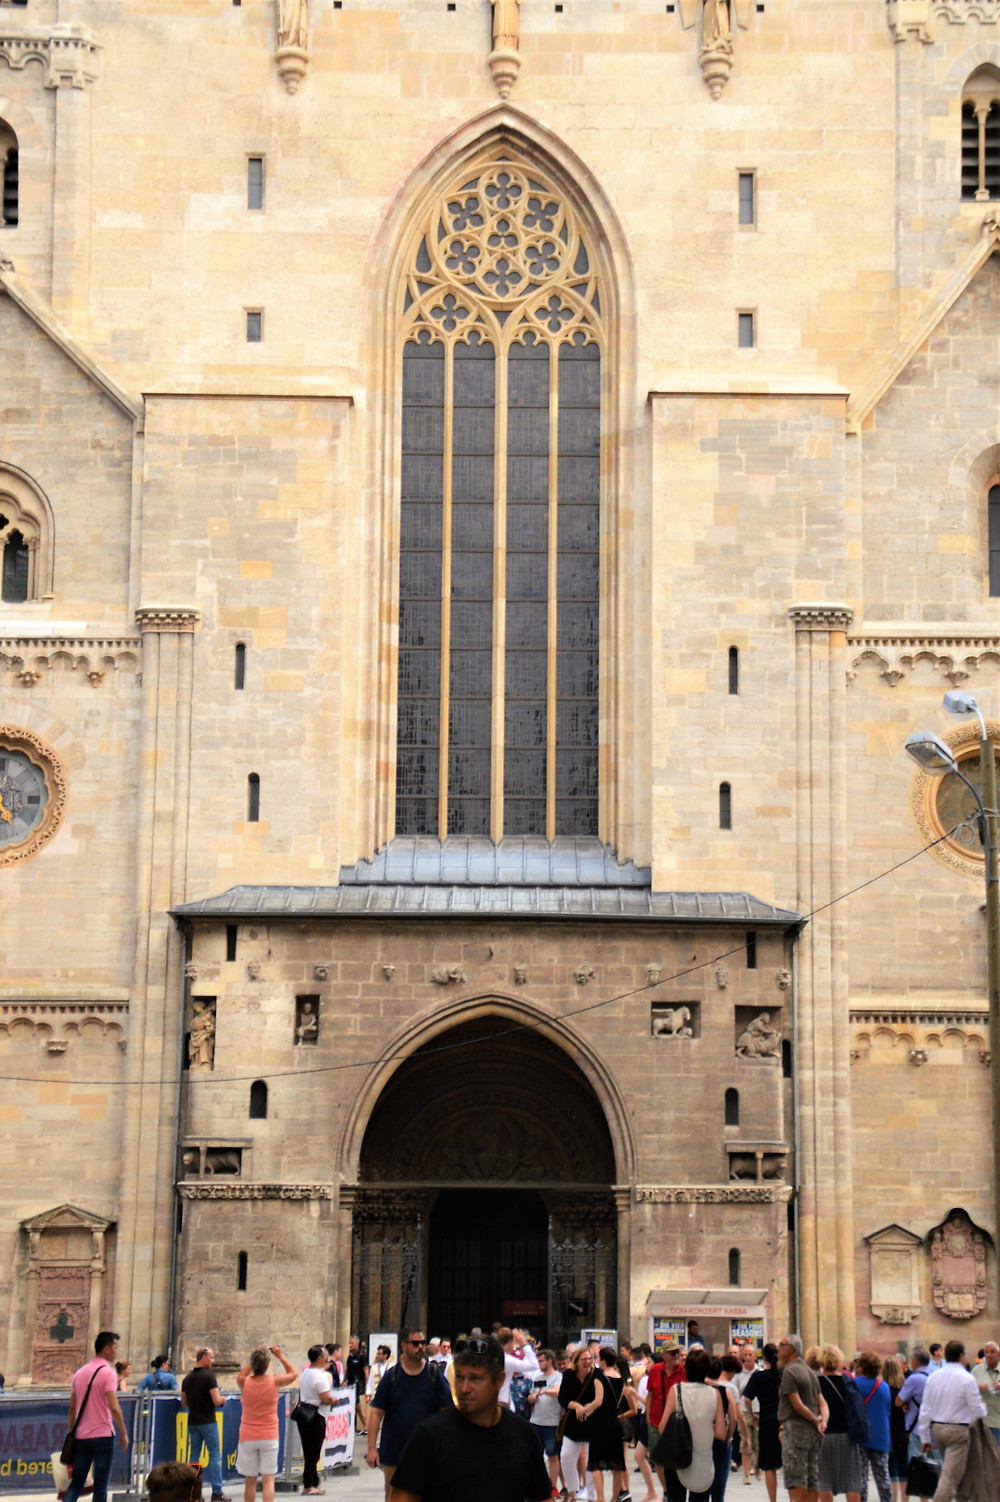 The oldest remaining parts of St. Stephen's Cathedral is the 'Giant Gate' entrance and adjacent Roman towers date back to the early 1200s.